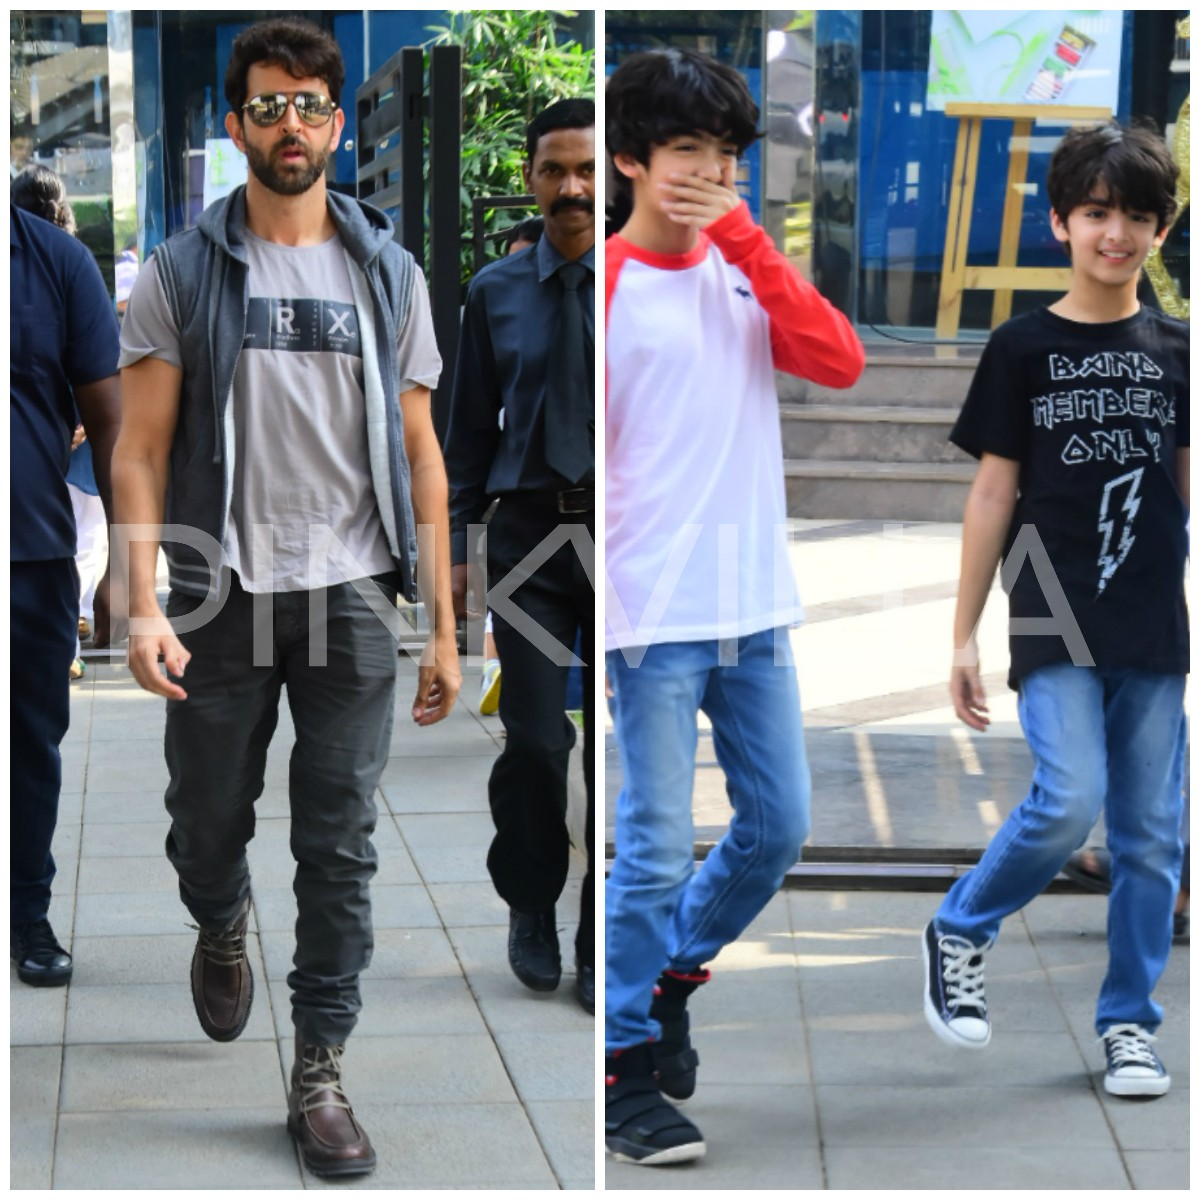 Hrithik Roshan hangs out with sons Hrehaan and Hridhaan on a